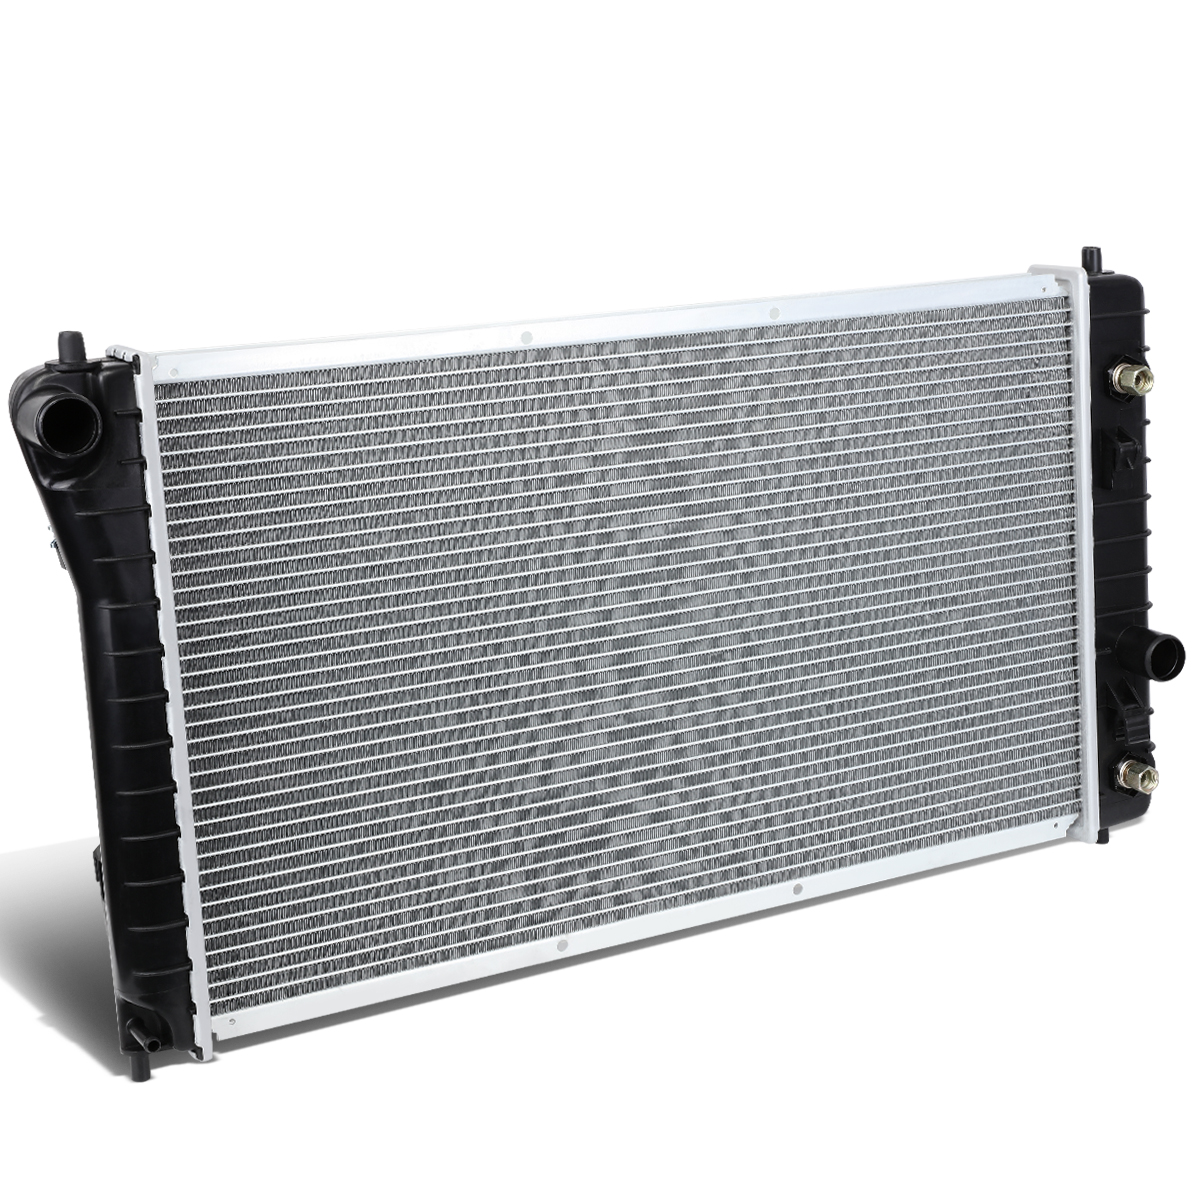 Radiator Assembly Aluminum Core Direct Fit for Chevy Pontiac Cavalier Sunfire